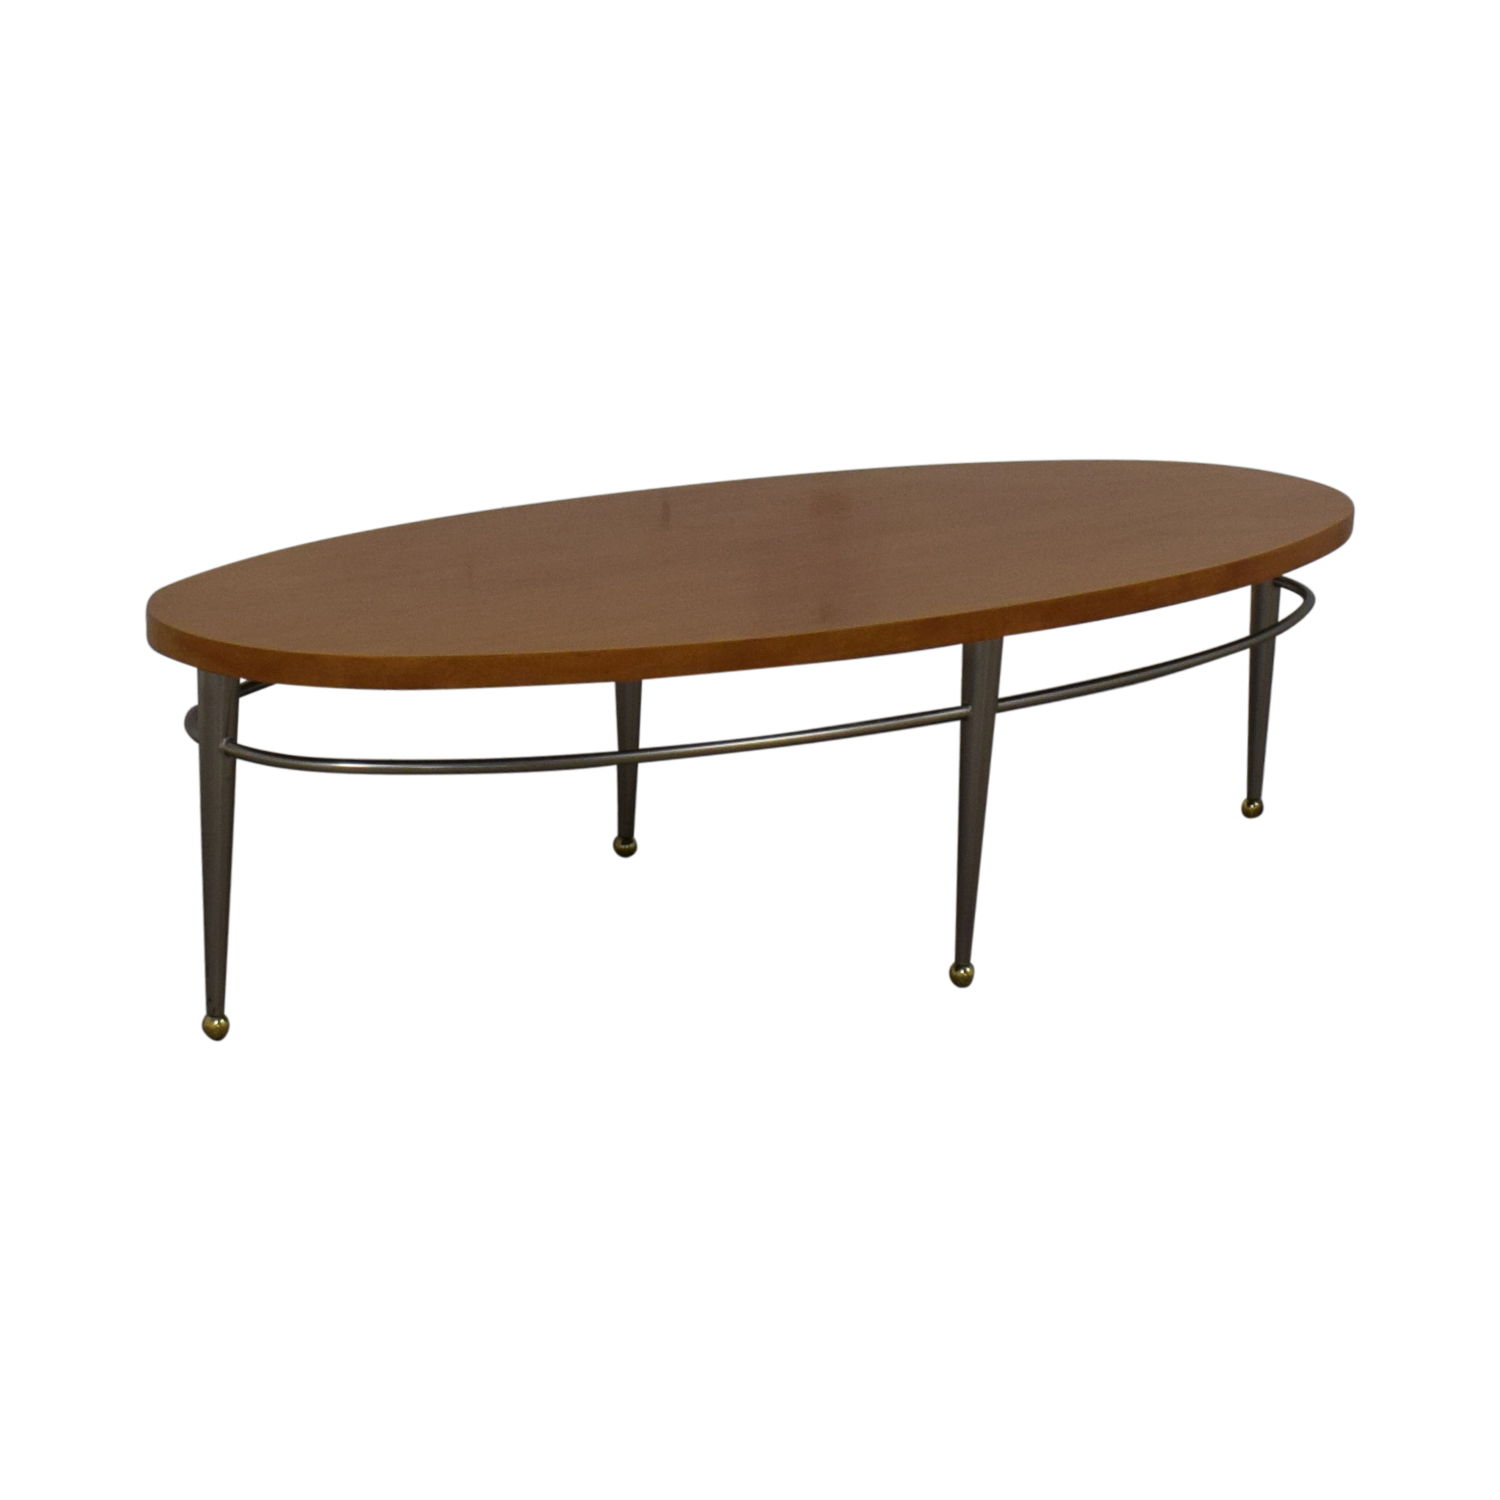 Ethan Allen Ethan Allen Round Wood Coffee Table coupon